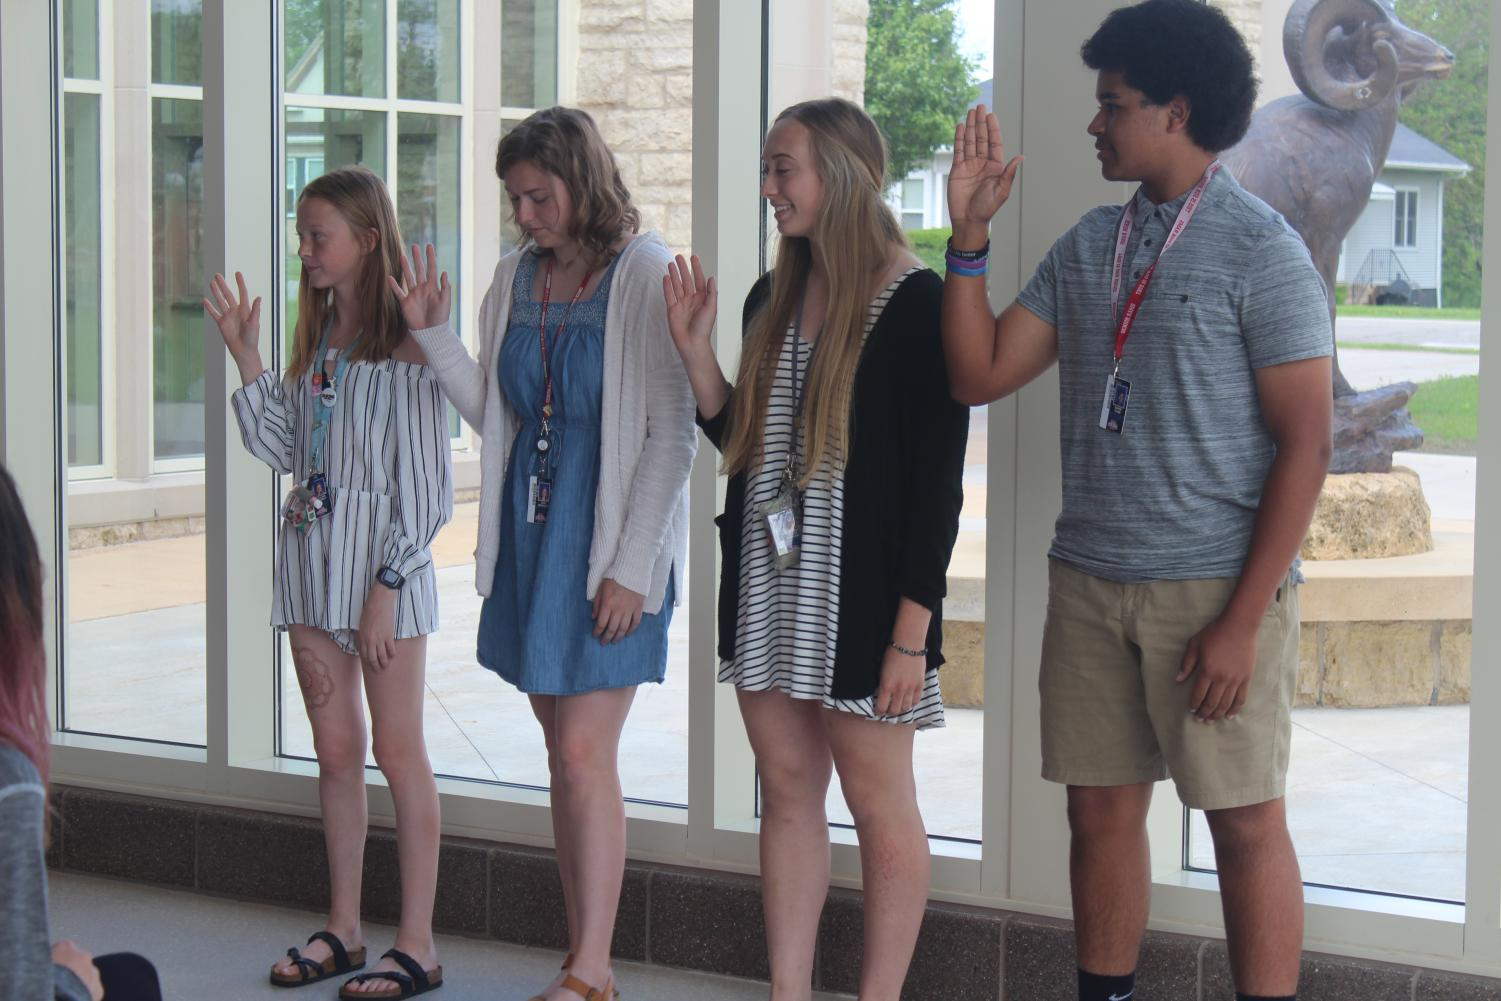 Lillian Schmidt, Ava Bradley, Rylee Capesius, and Gavin Guns are sworn in to their new Student Council roles